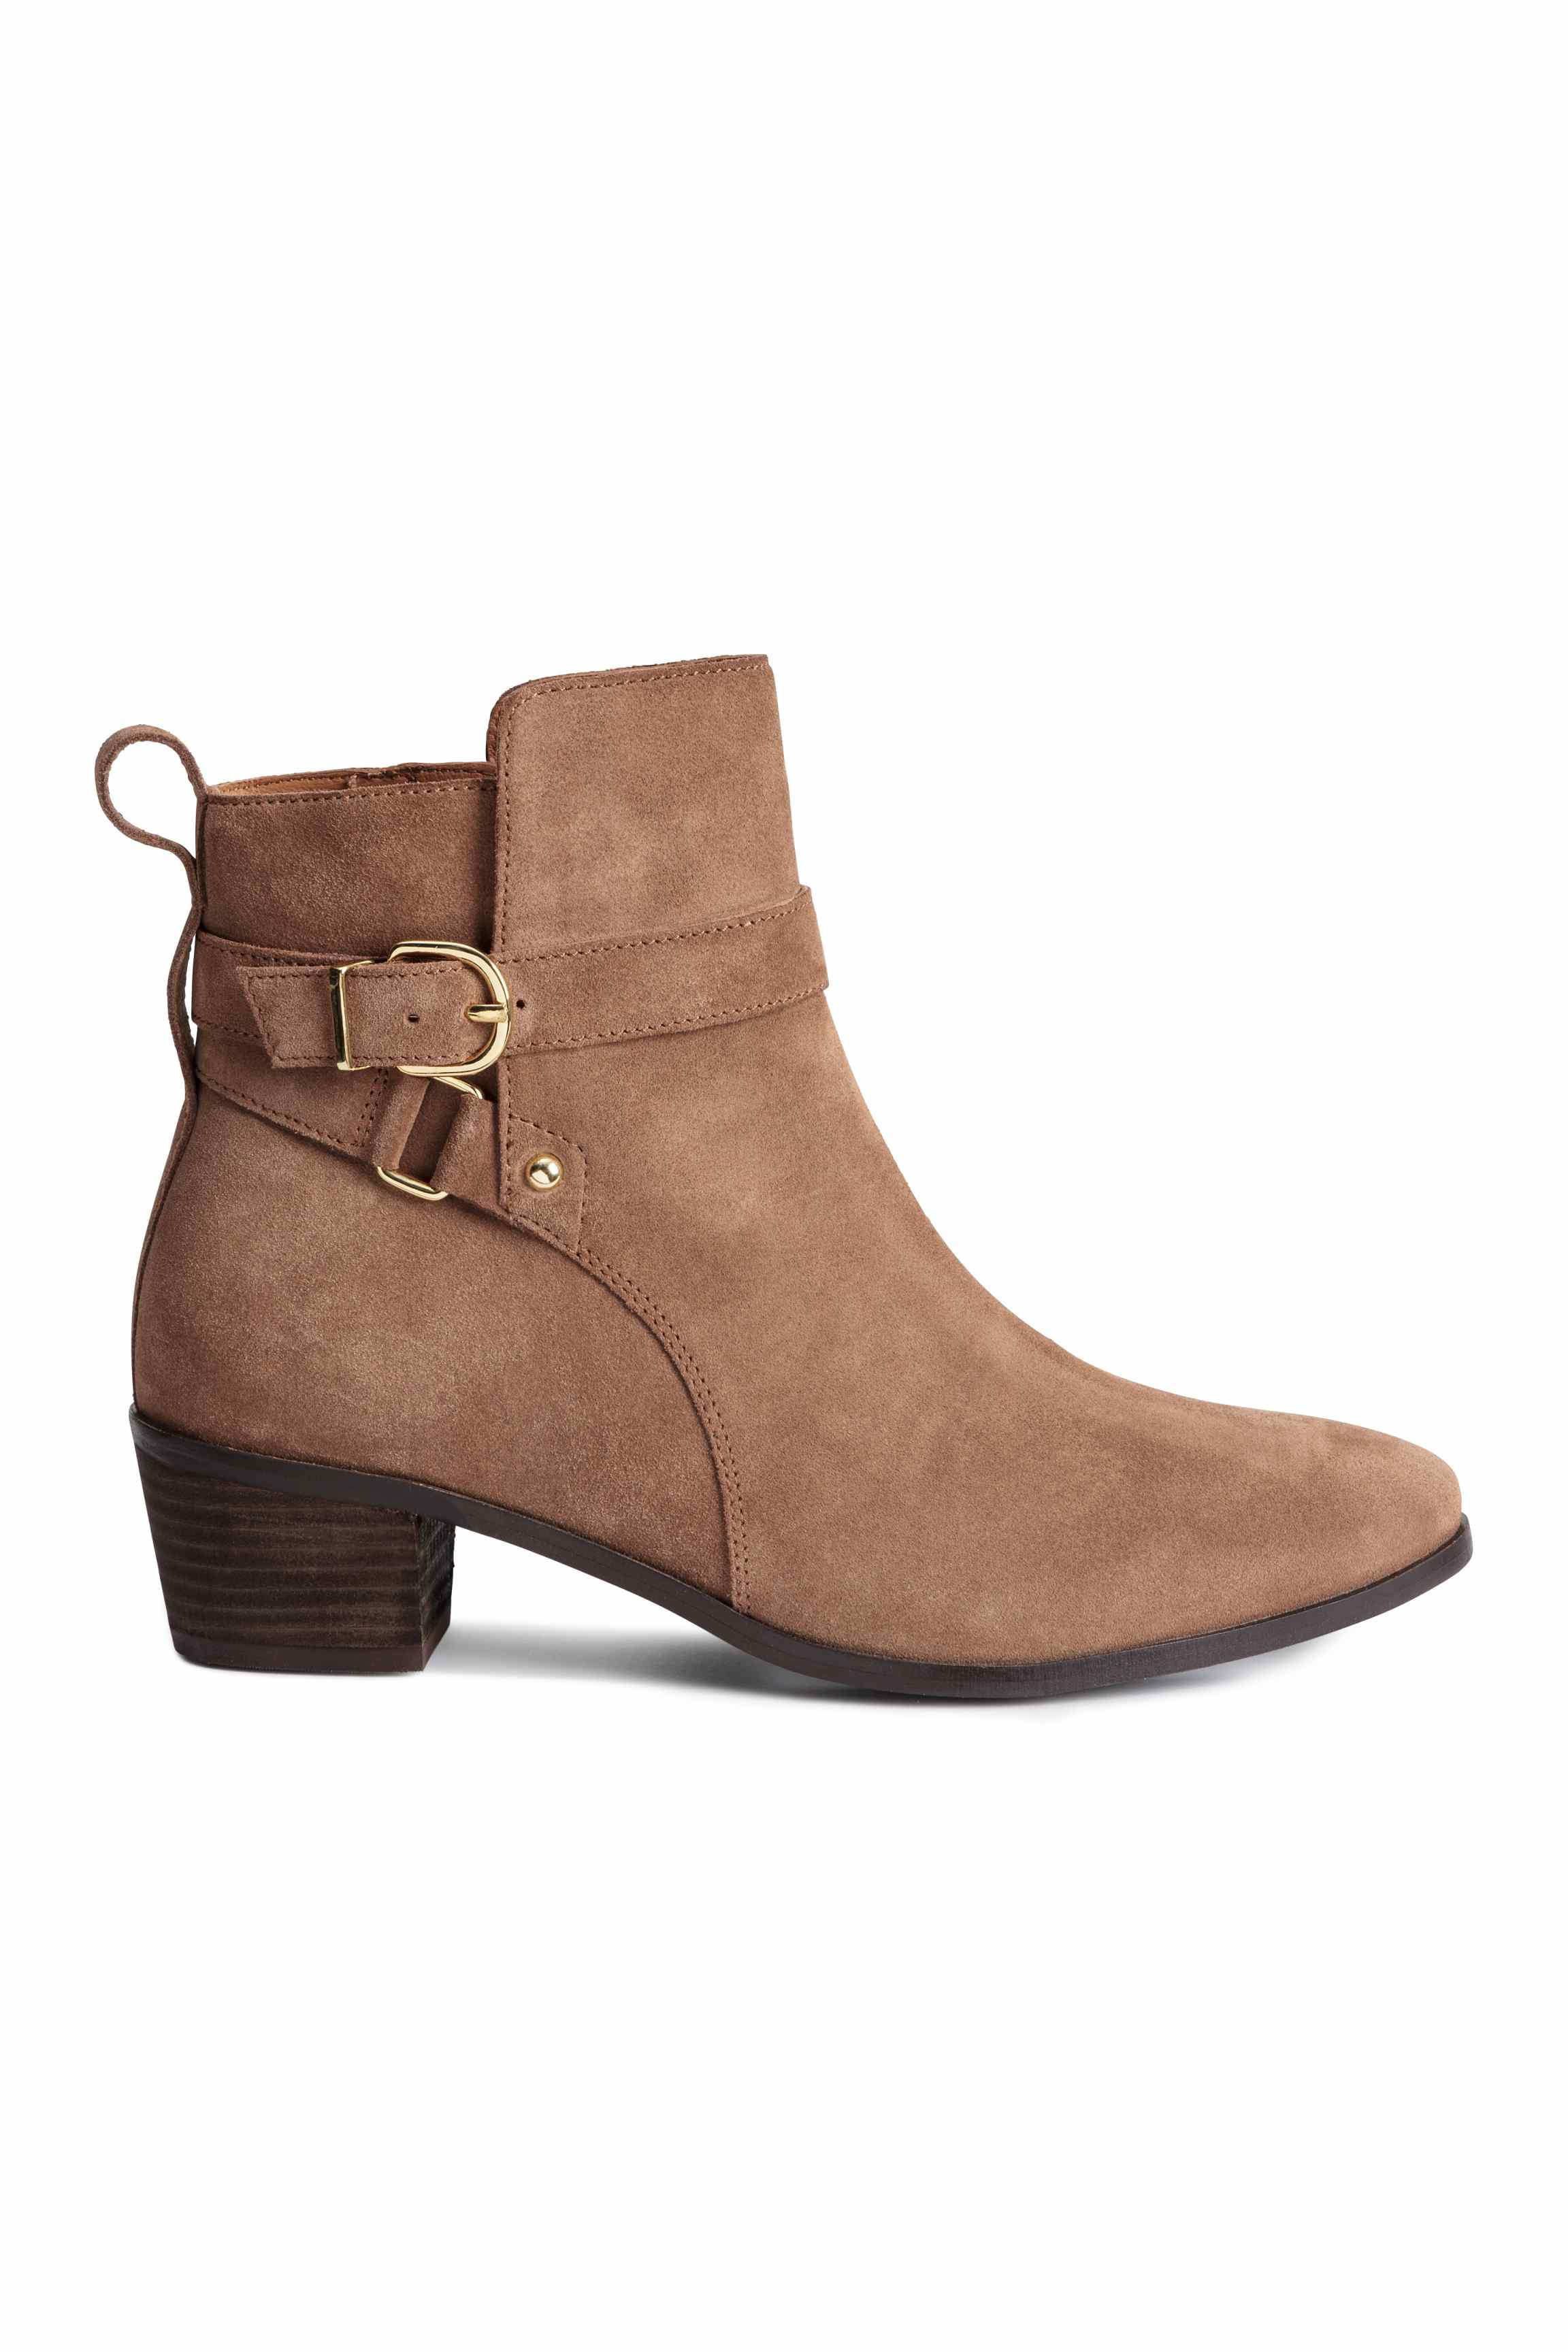 H&m Suede Boots in Brown (Light brown)